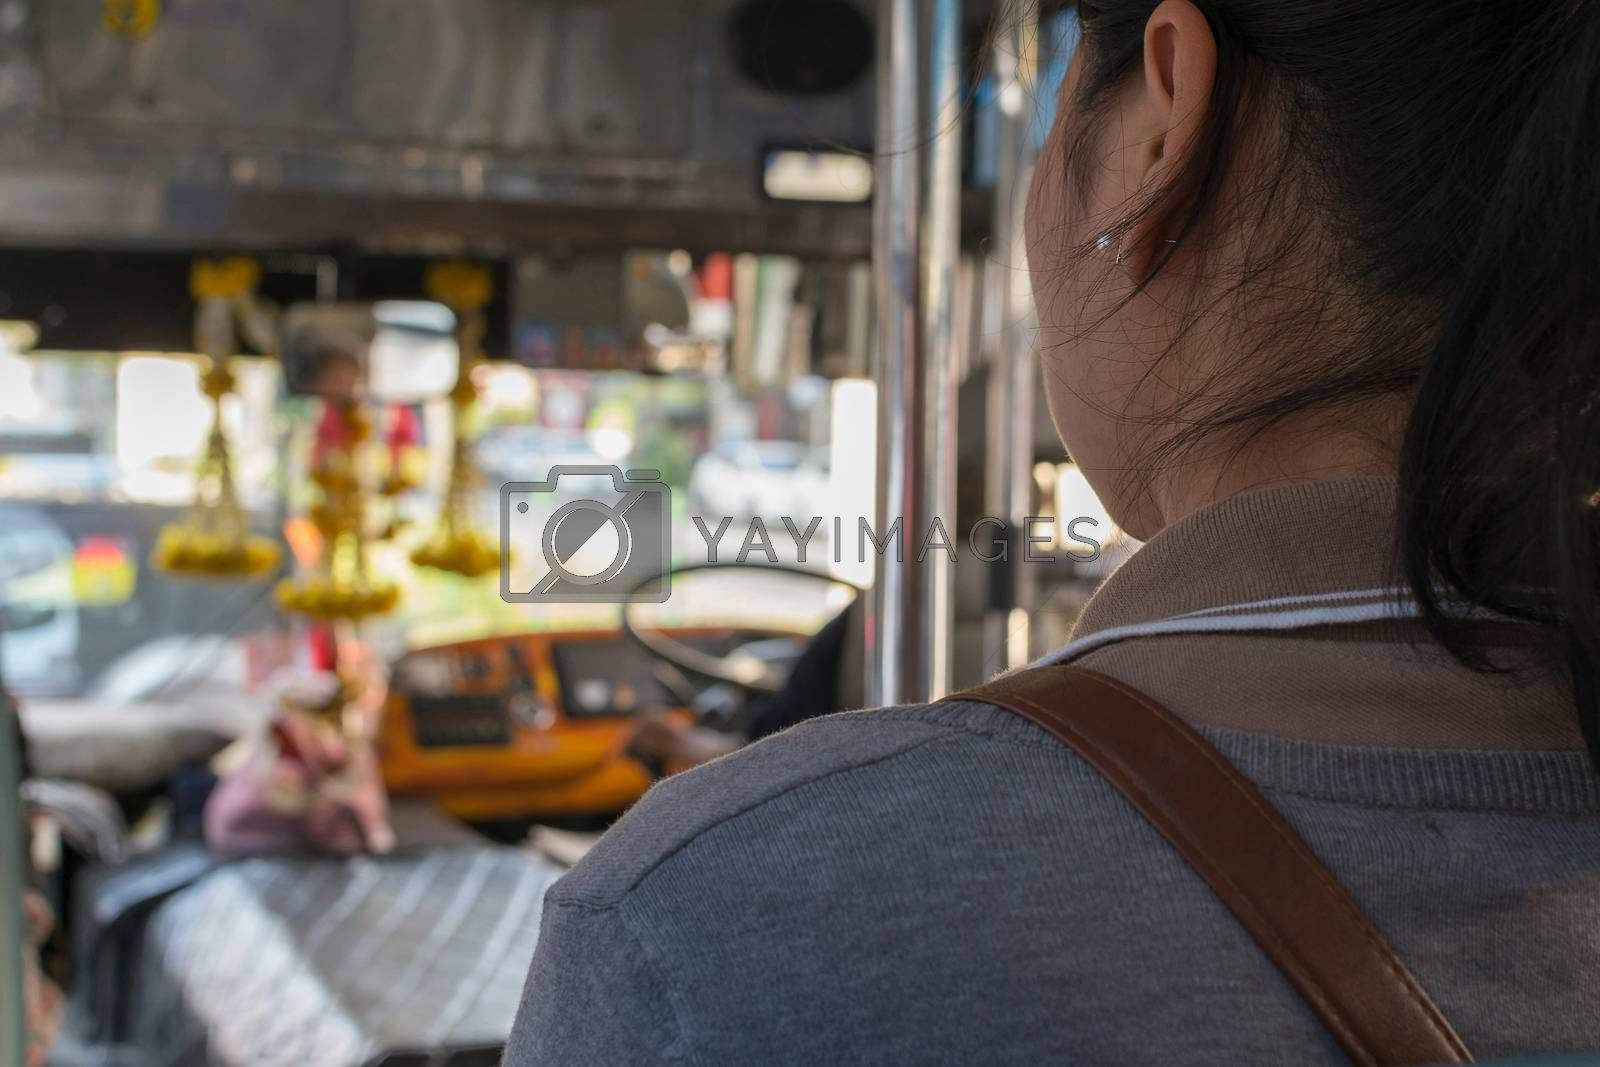 Bangkok, Thailand - March 15, 2016 : Unidentified people travel by bus in Bangkok. Buses are one of the most important public transport system in Bangkok.